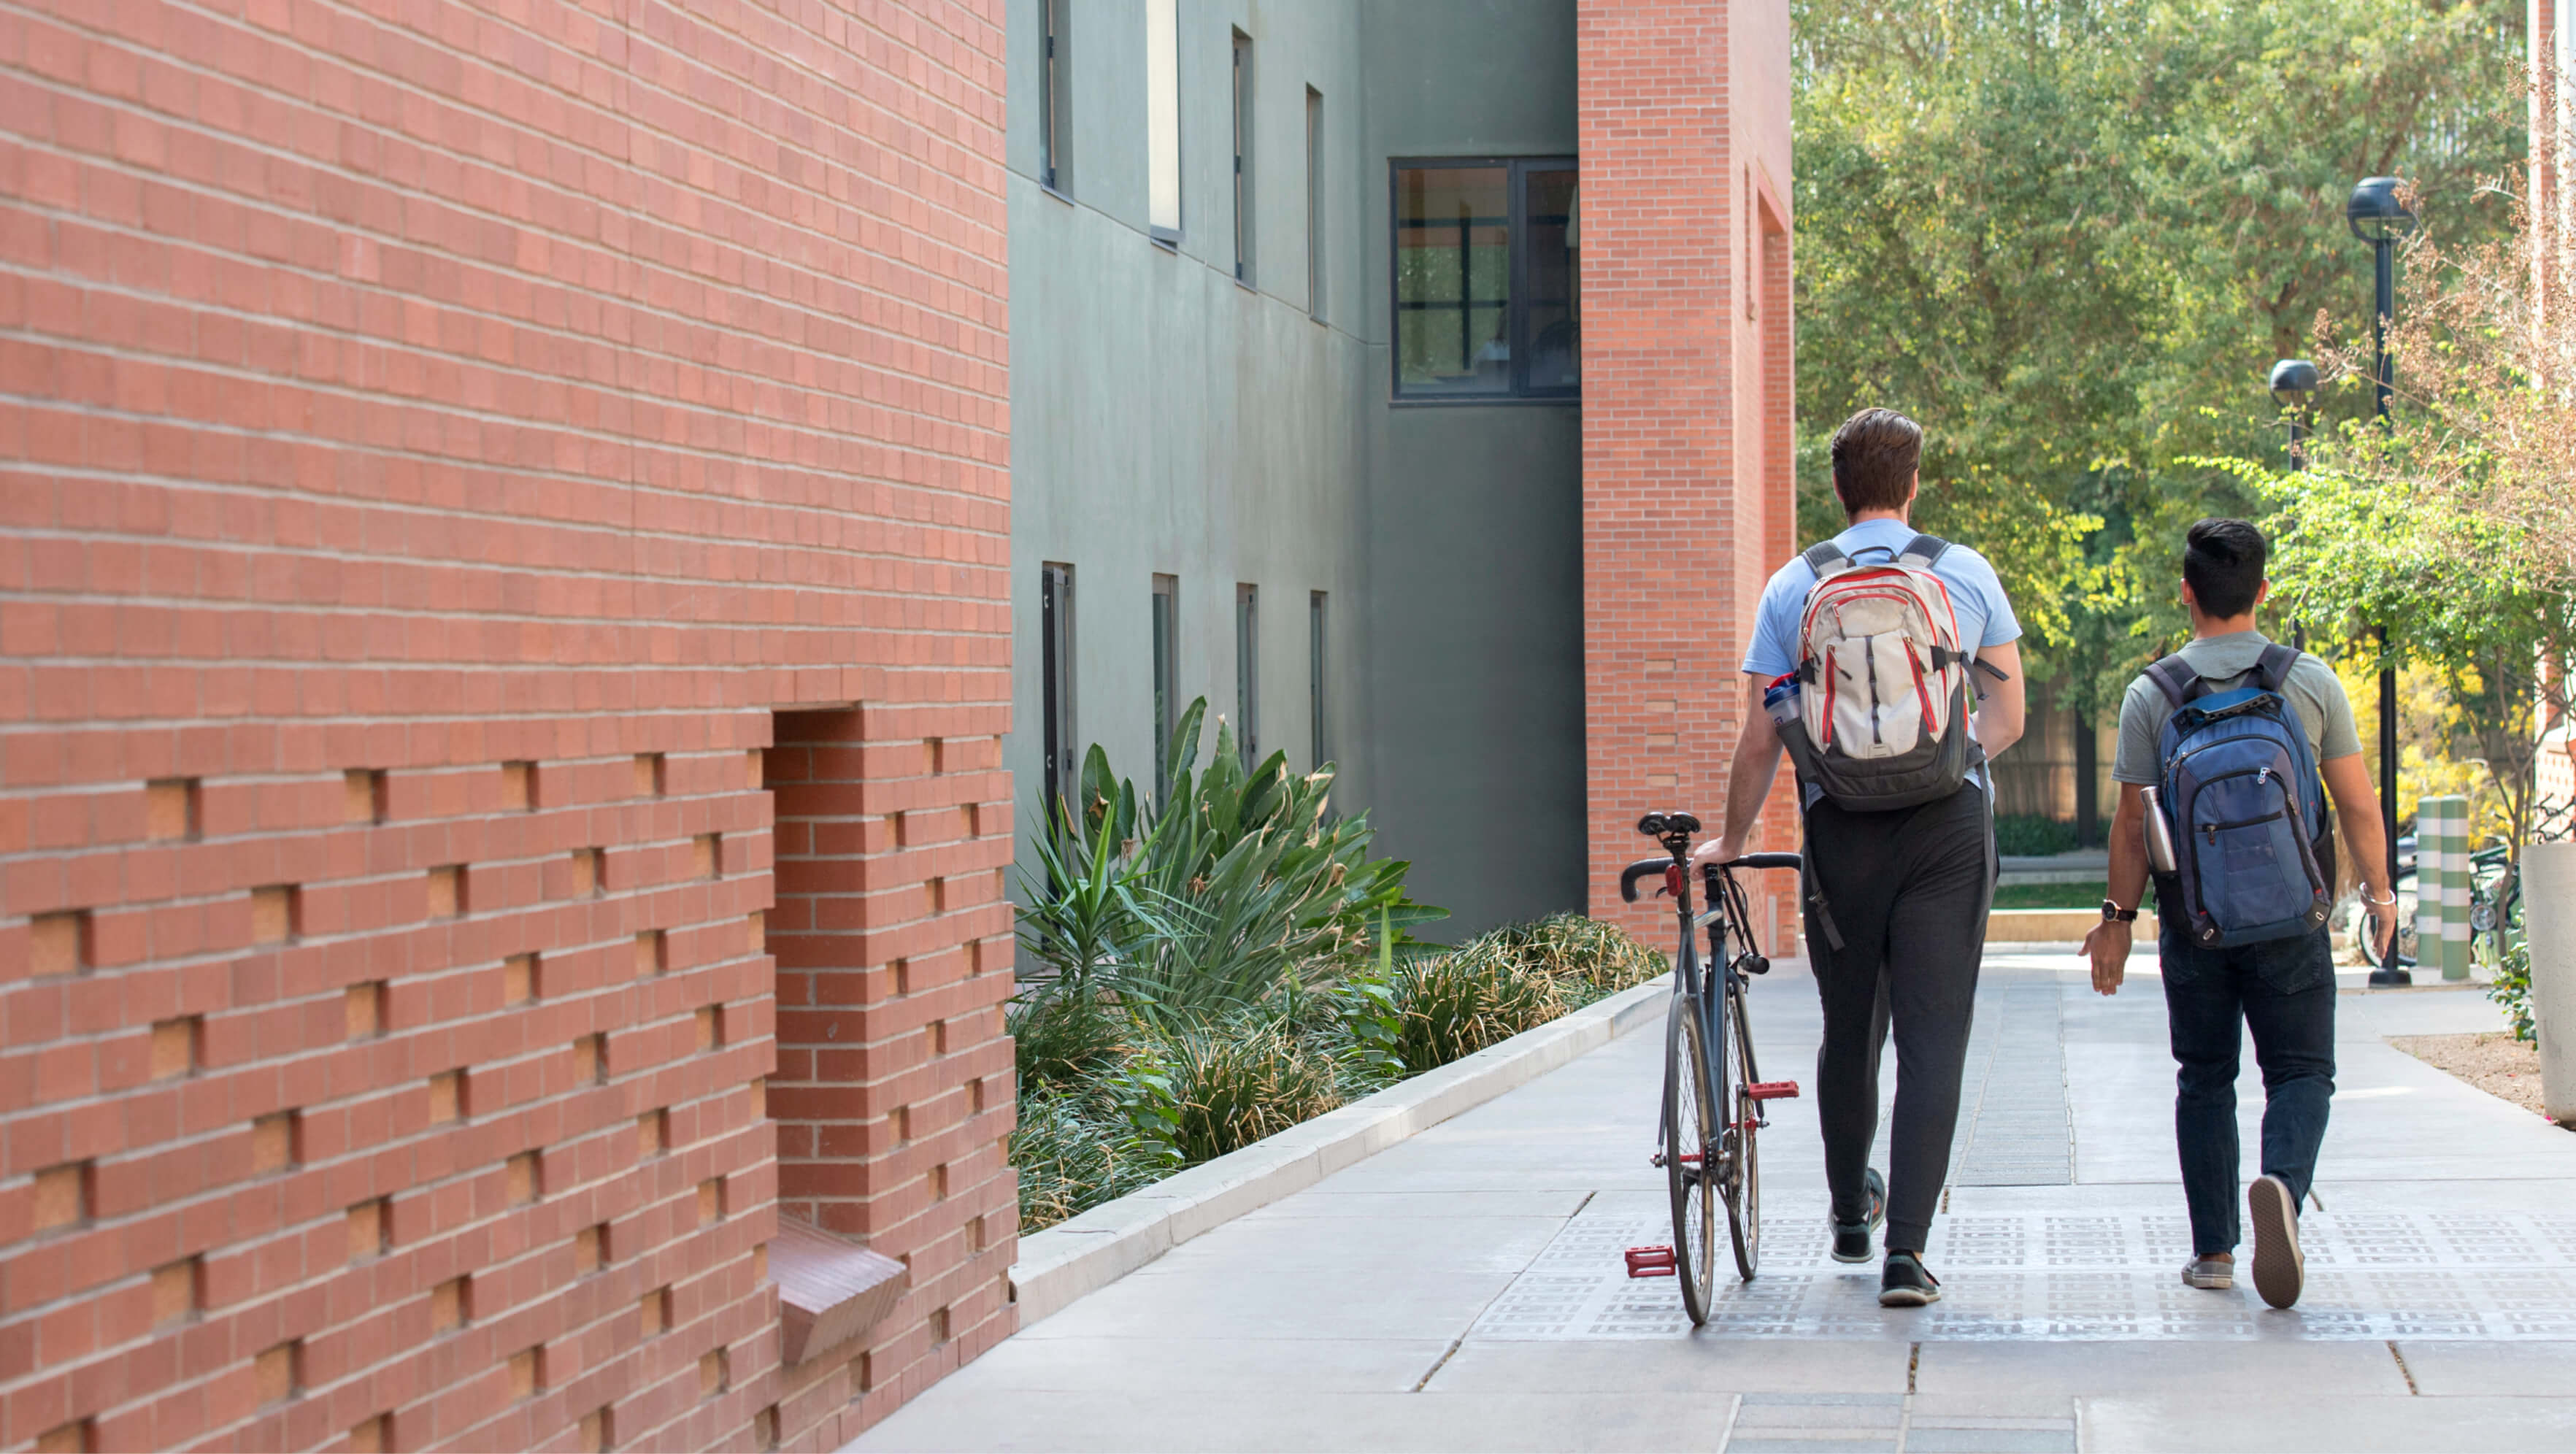 Students walking side by side on campus